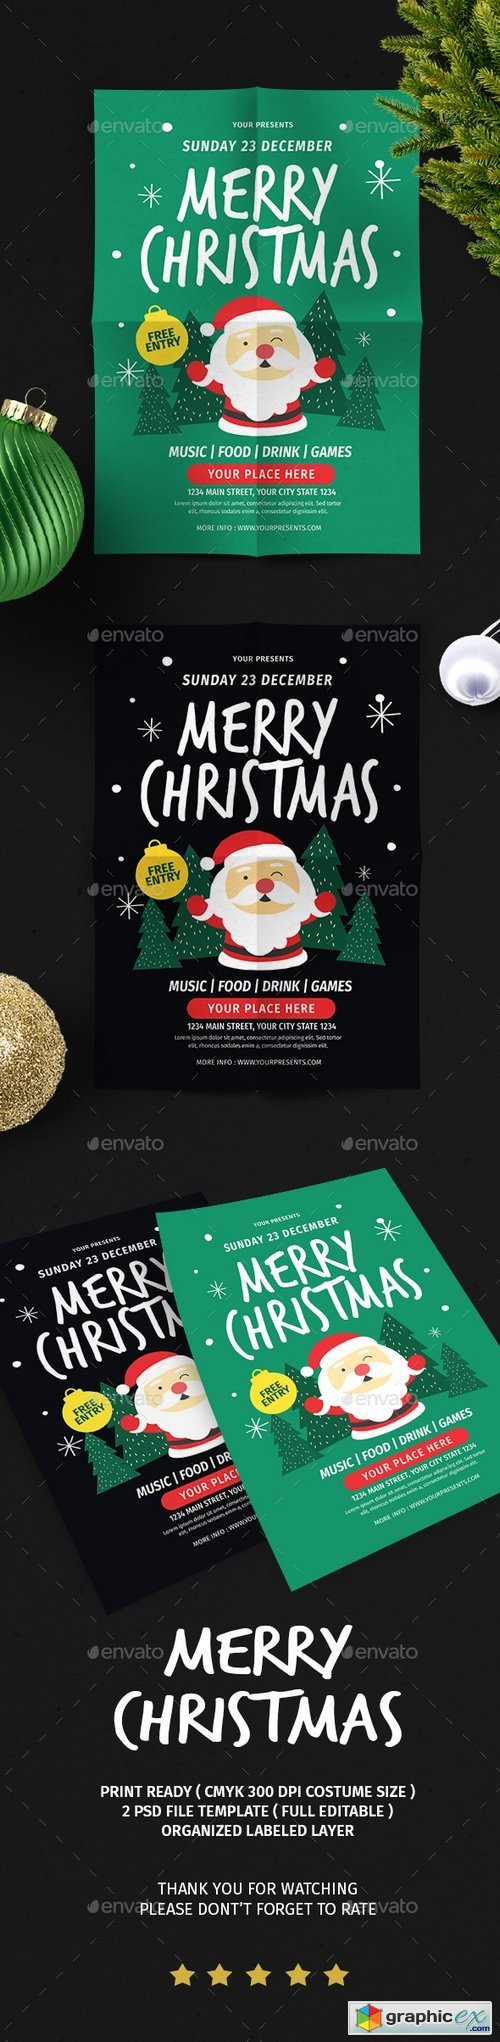 Christmas Flyer Vol.6